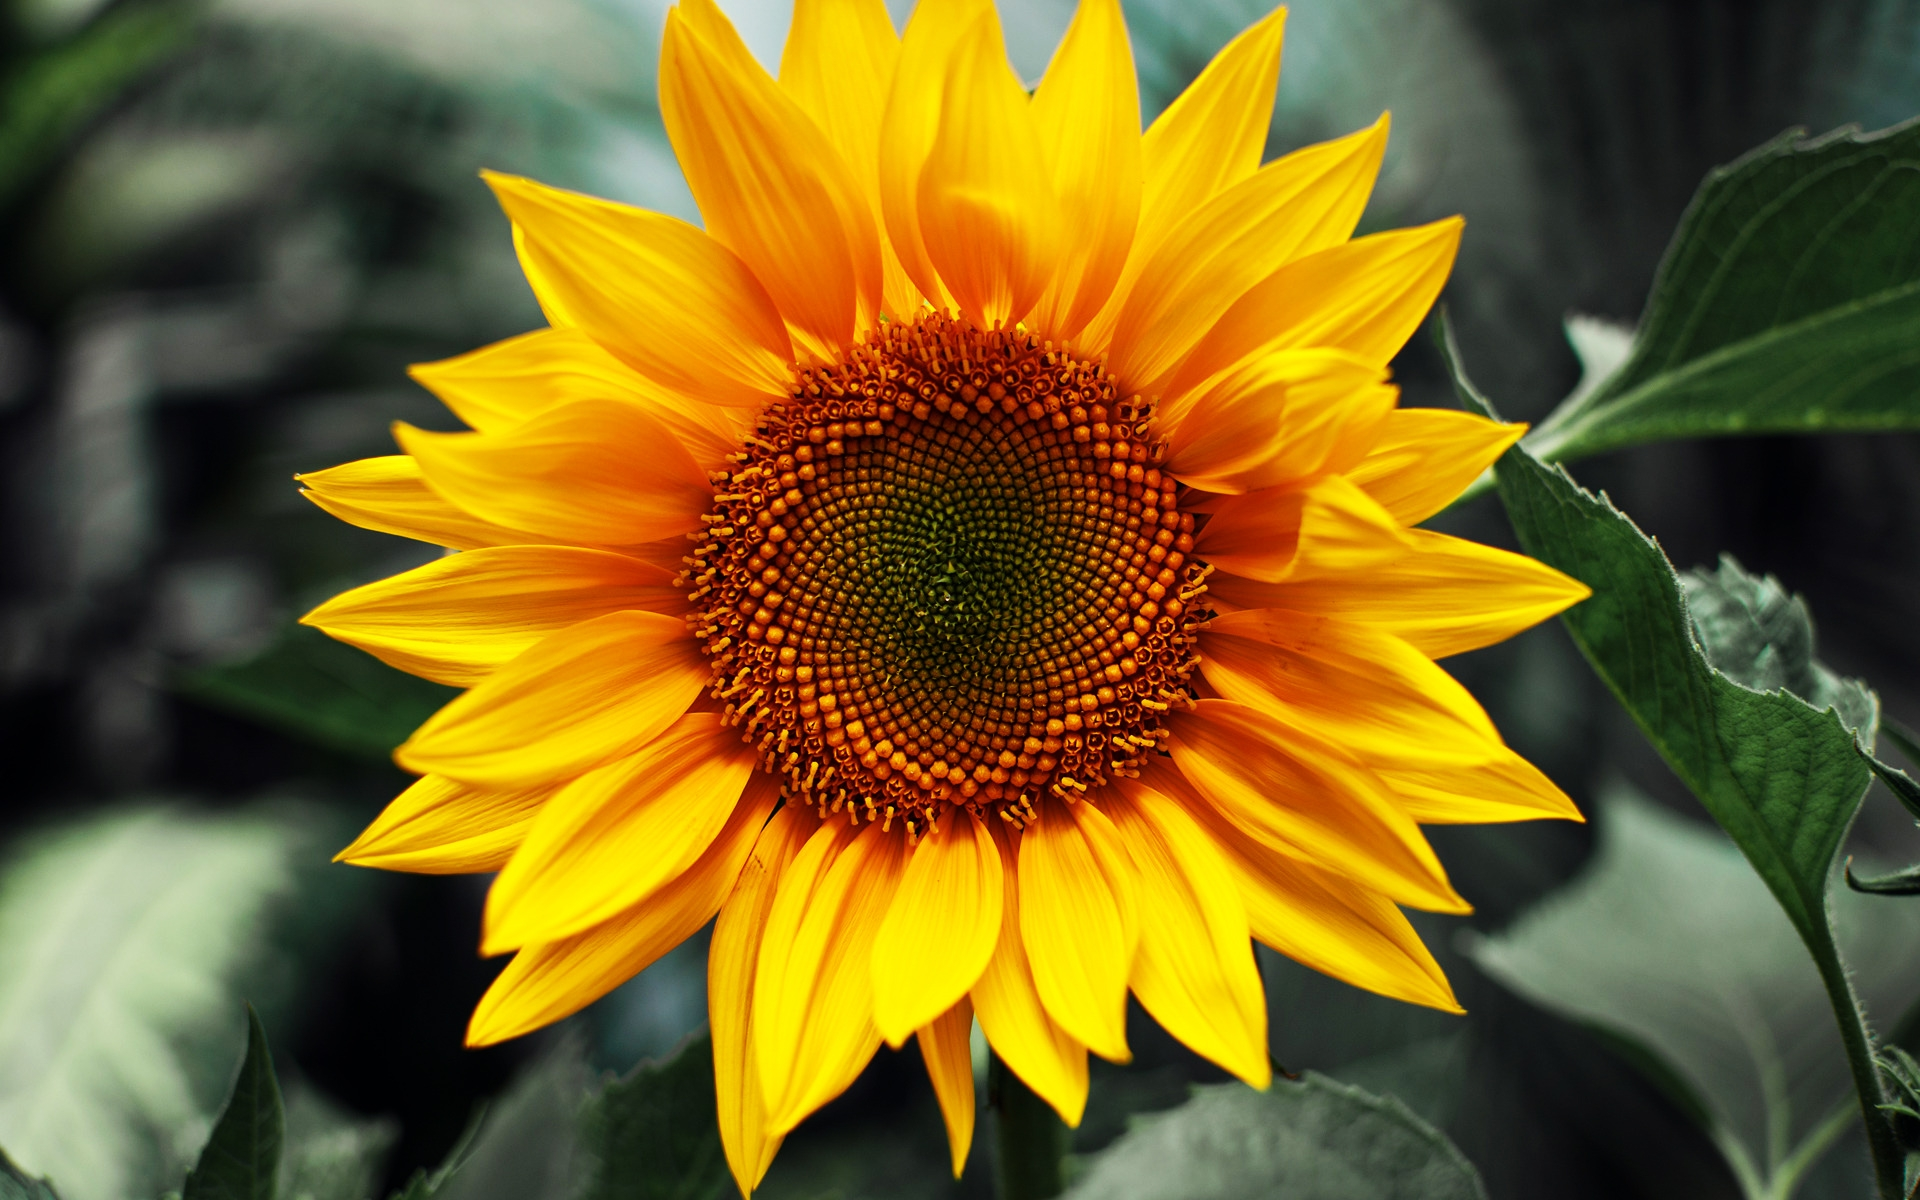 SUNFLOWER | HEALTH BENEFICIAL